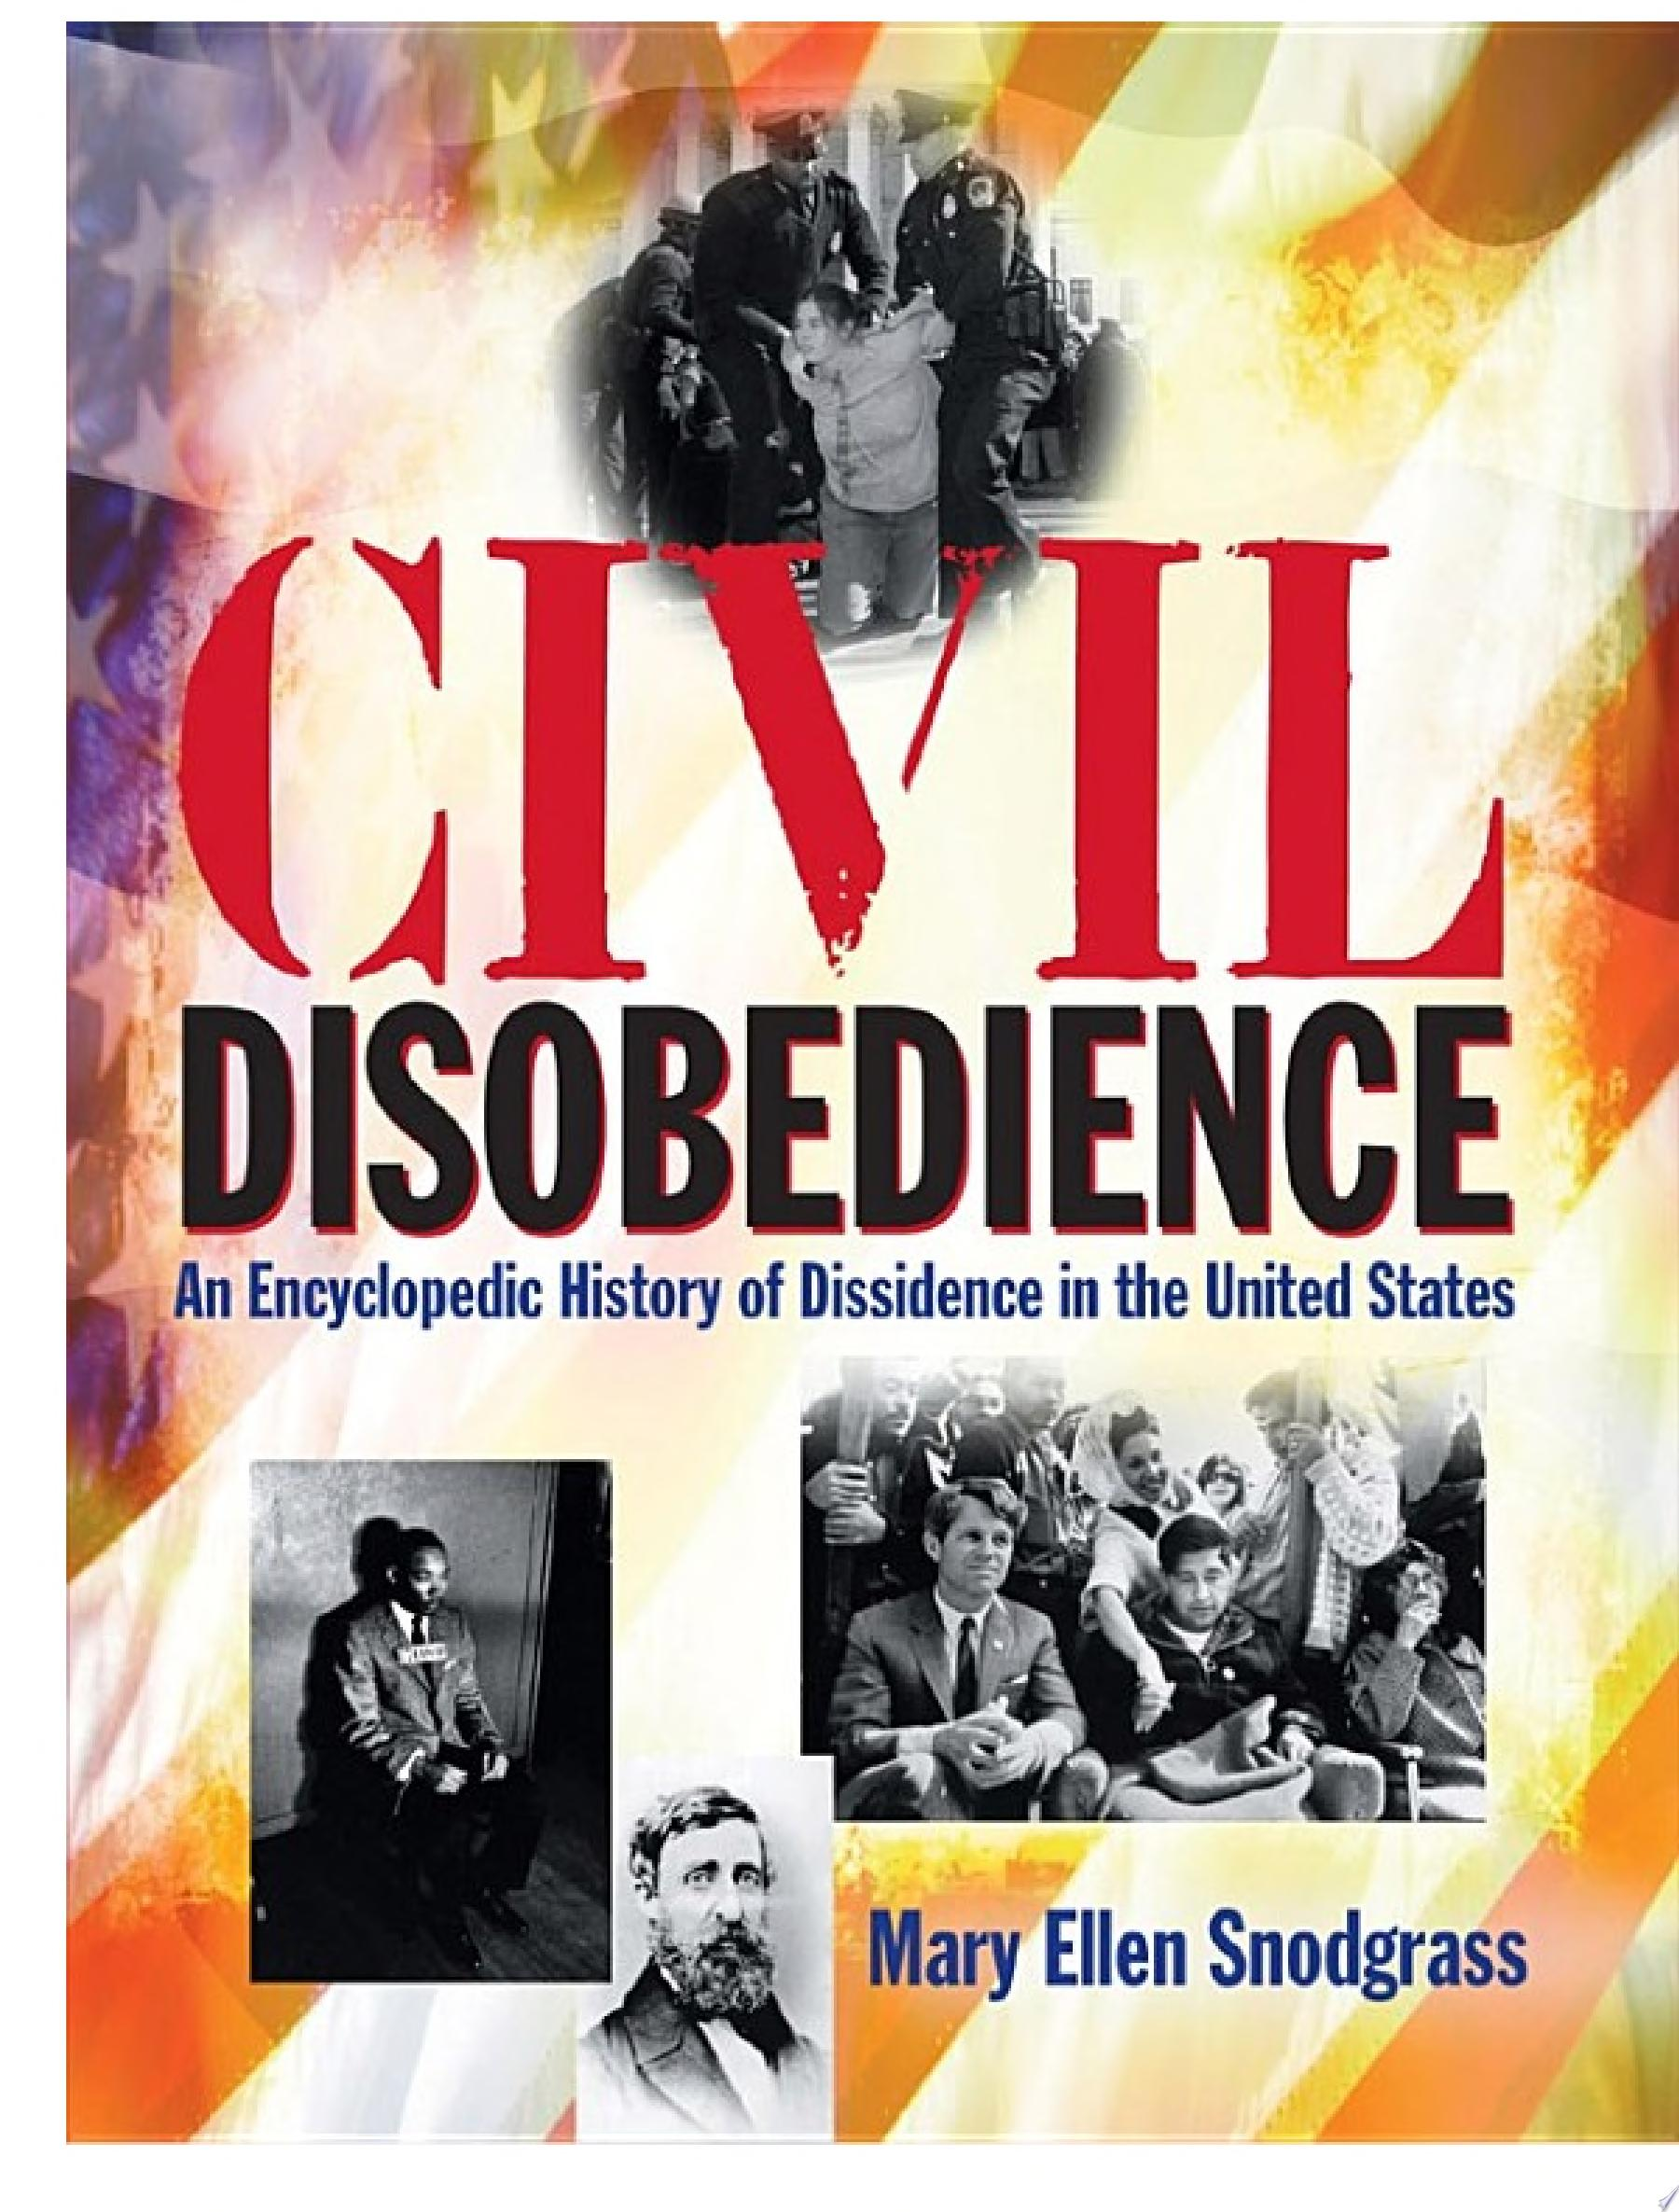 Civil Disobedience  An Encyclopedic History of Dissidence in the United States